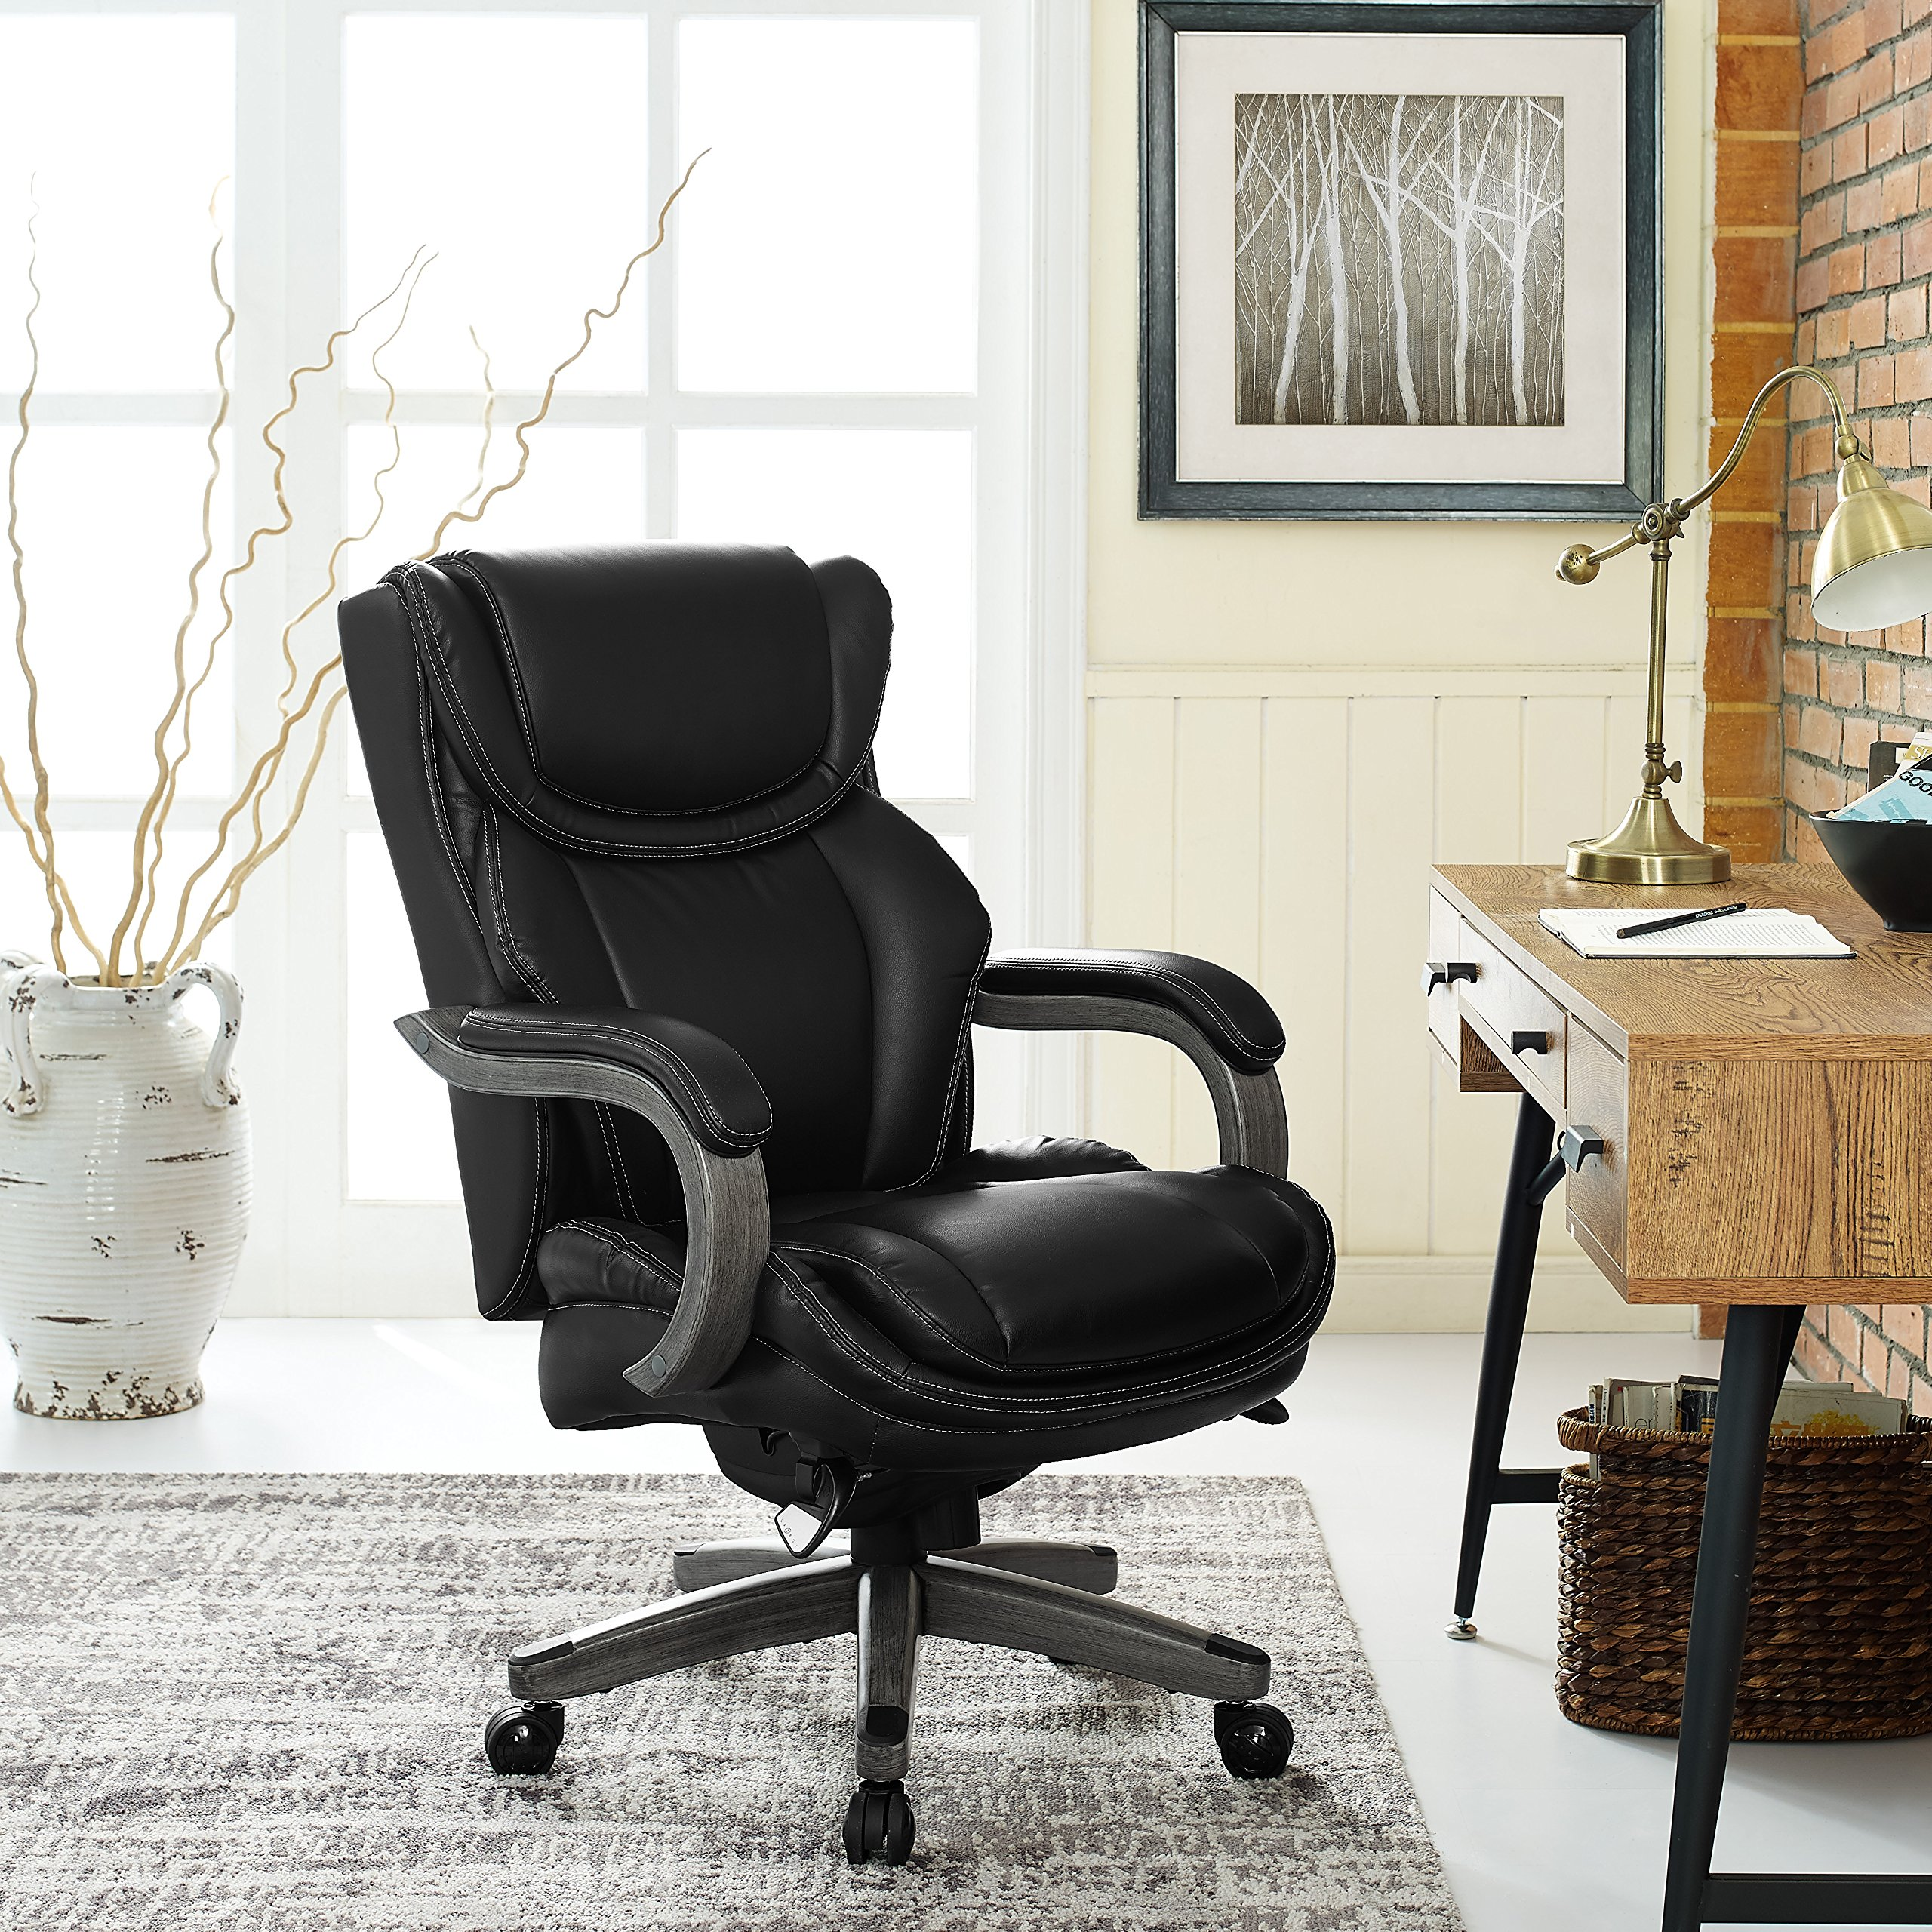 LaZBoy  Big & Tall Executive Chair Bonded Leather, Black by La-Z-Boy